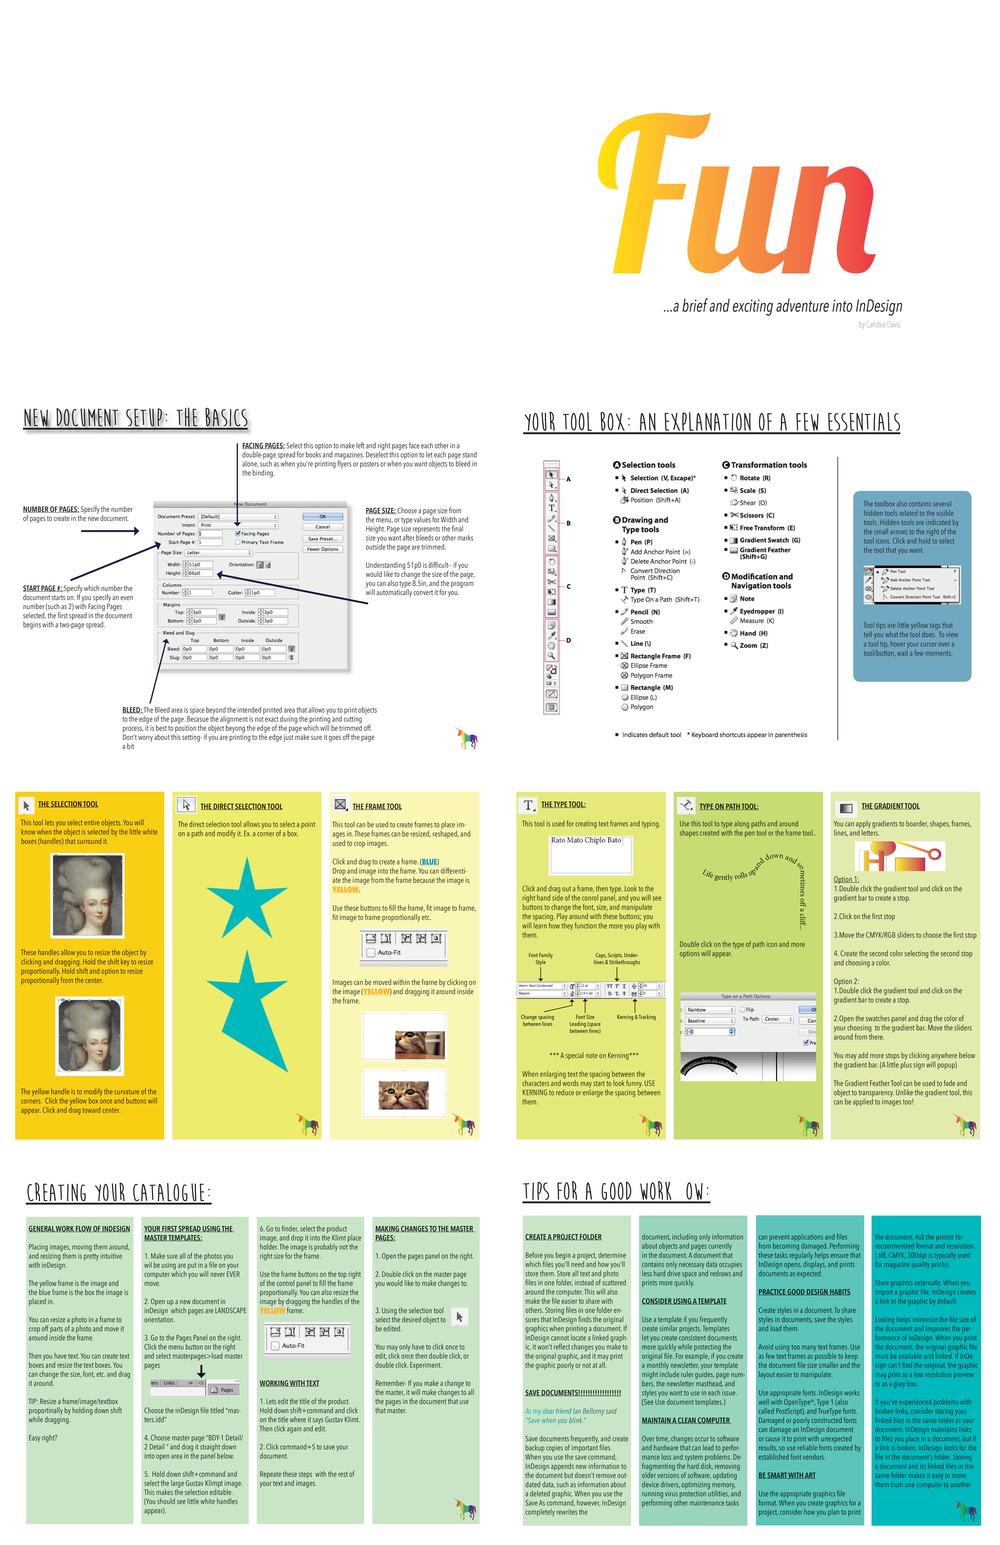 Excerpts from   Fun: A brief and exciting adventure into InDesign    This instructional booklet was created as a helpful guide to supplement workshops I conducted for those who maintain marketing materials using InDesign. The unicorns at the bottom of each section link to the Adobe help page of the specific topic.